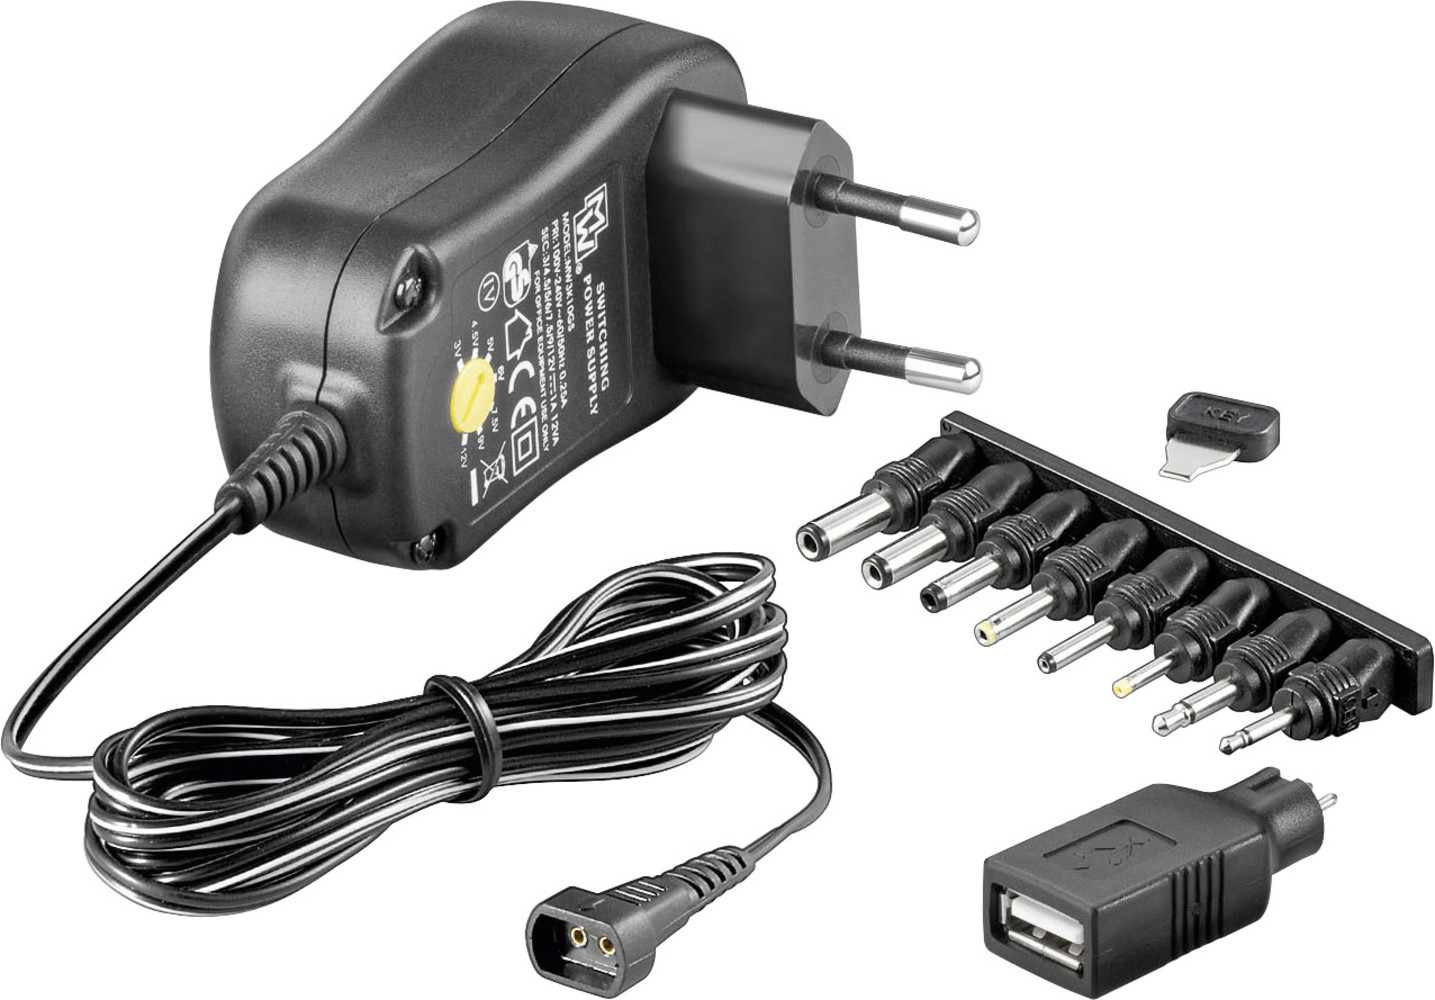 Image of Goobay 3-12V Universal-Charger 1,0A